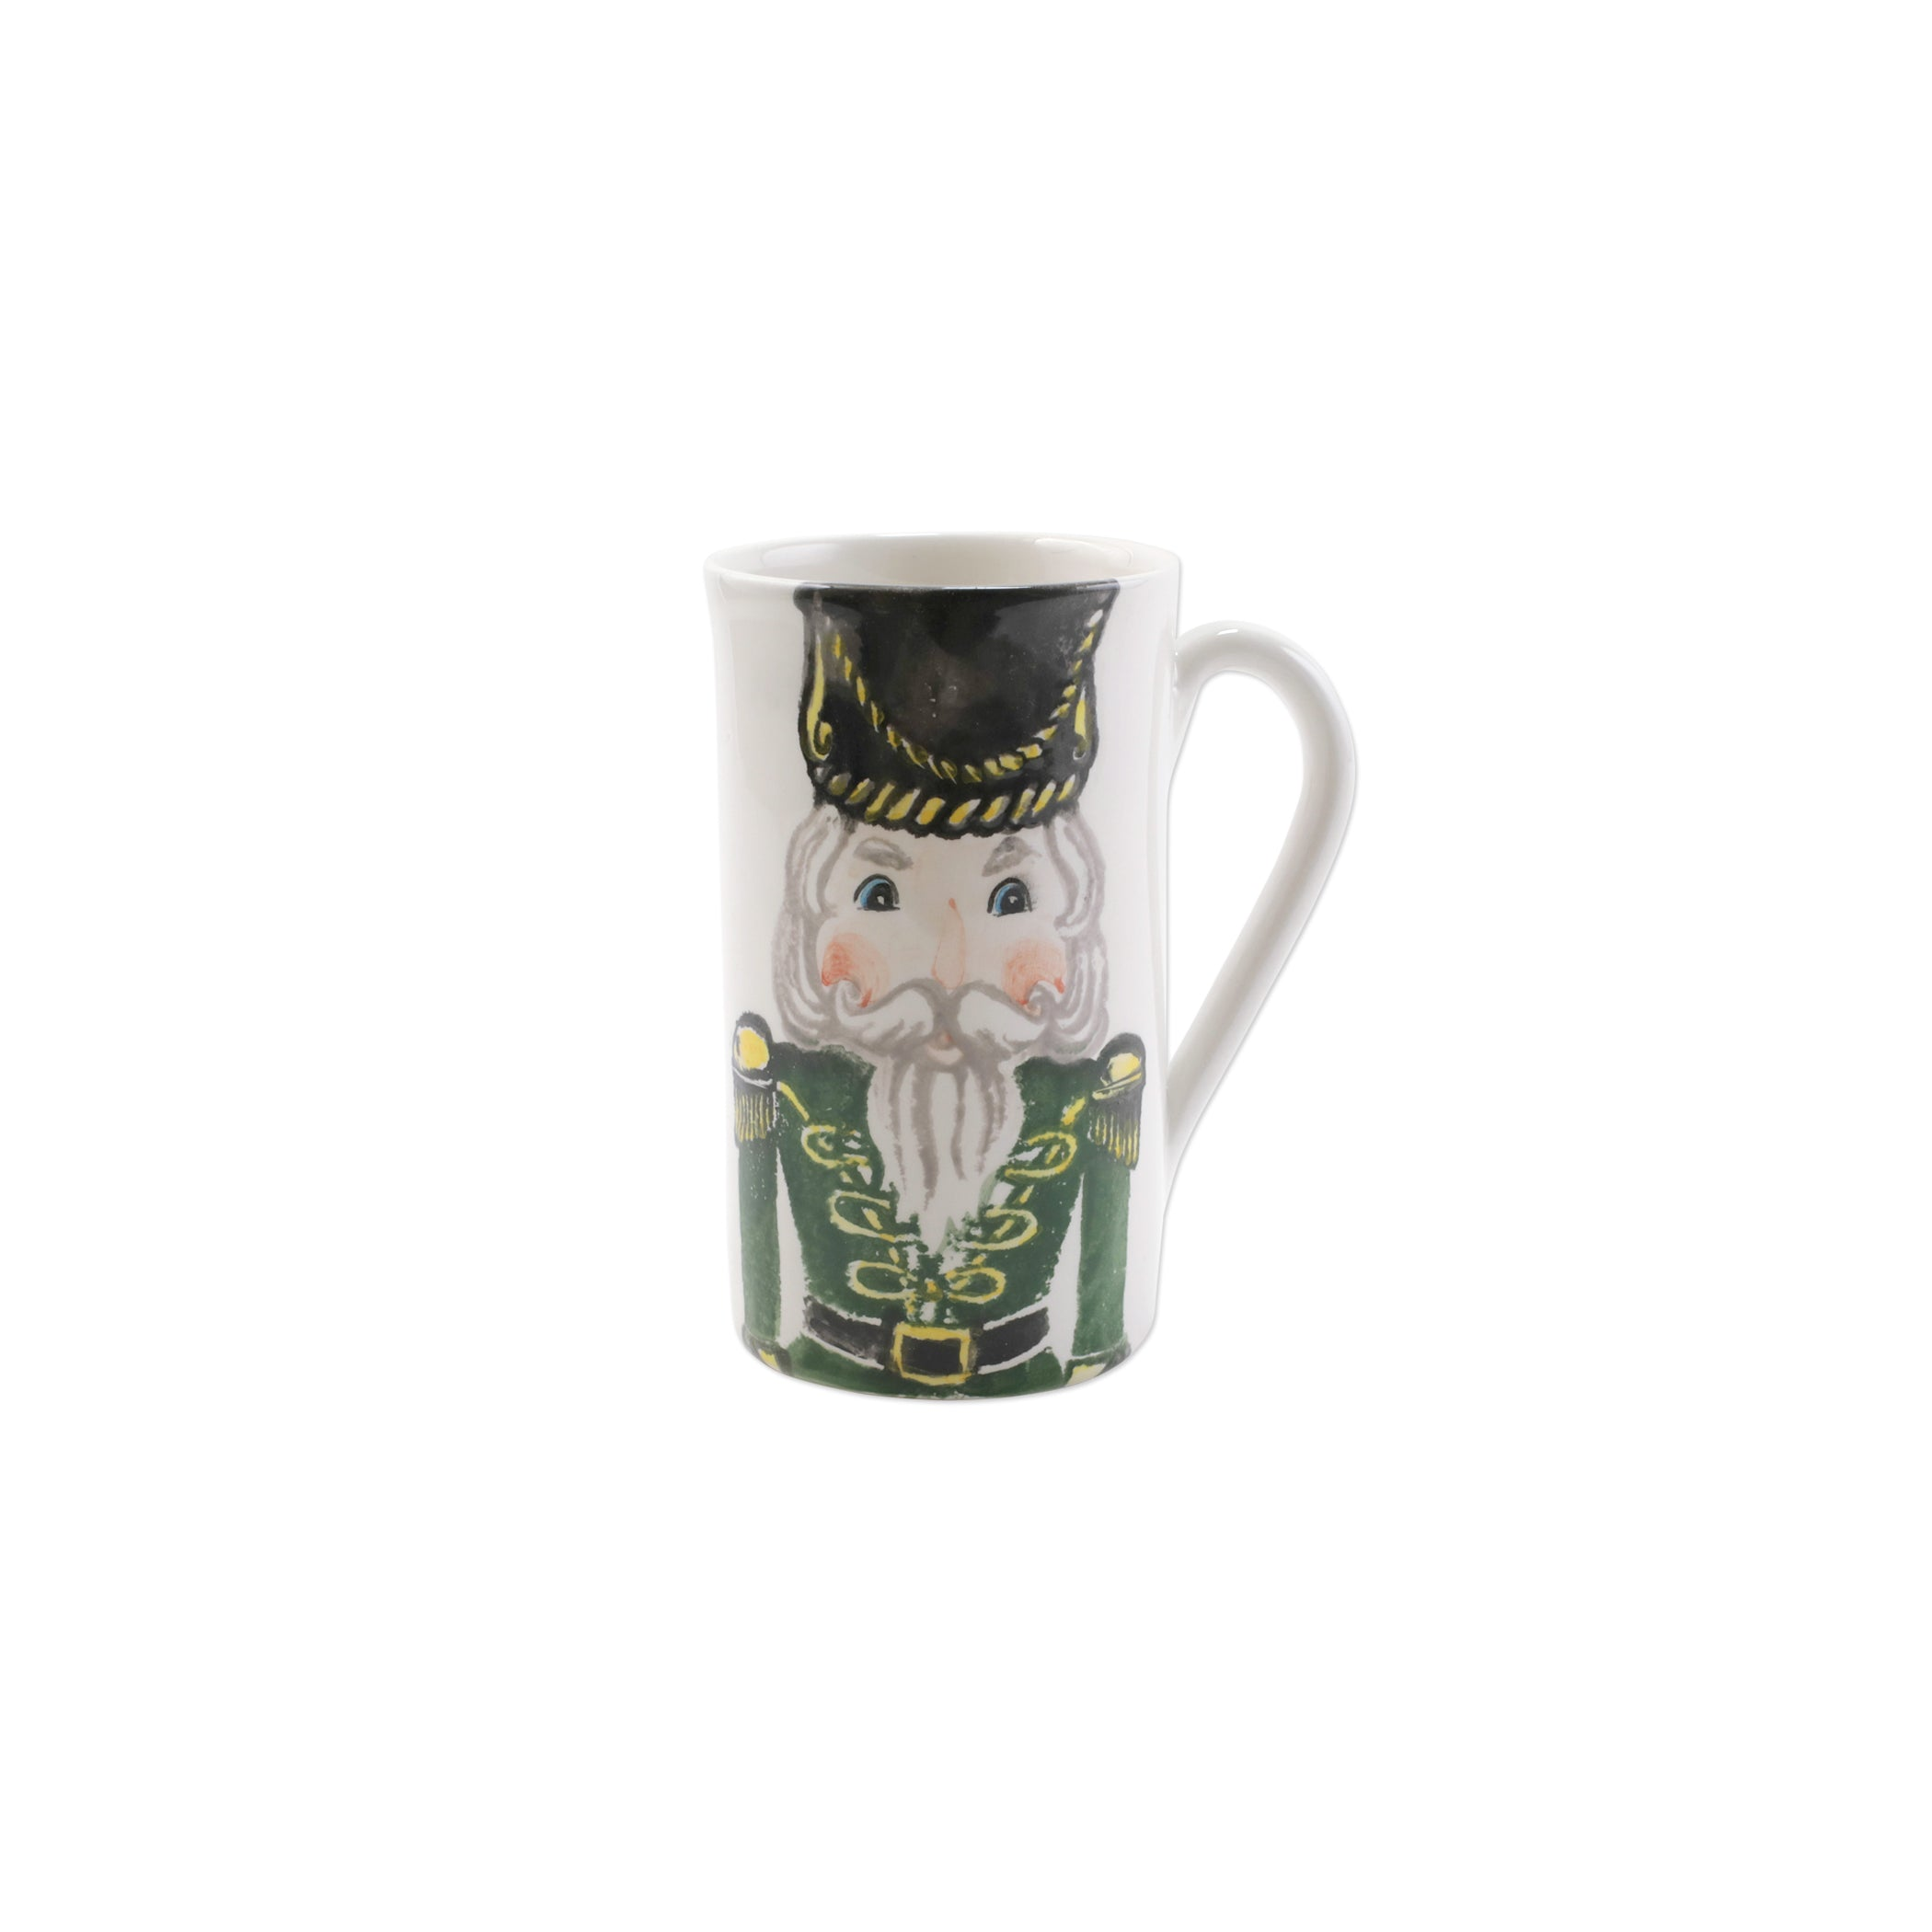 Nutcrackers Latte Mug w/ Soldier